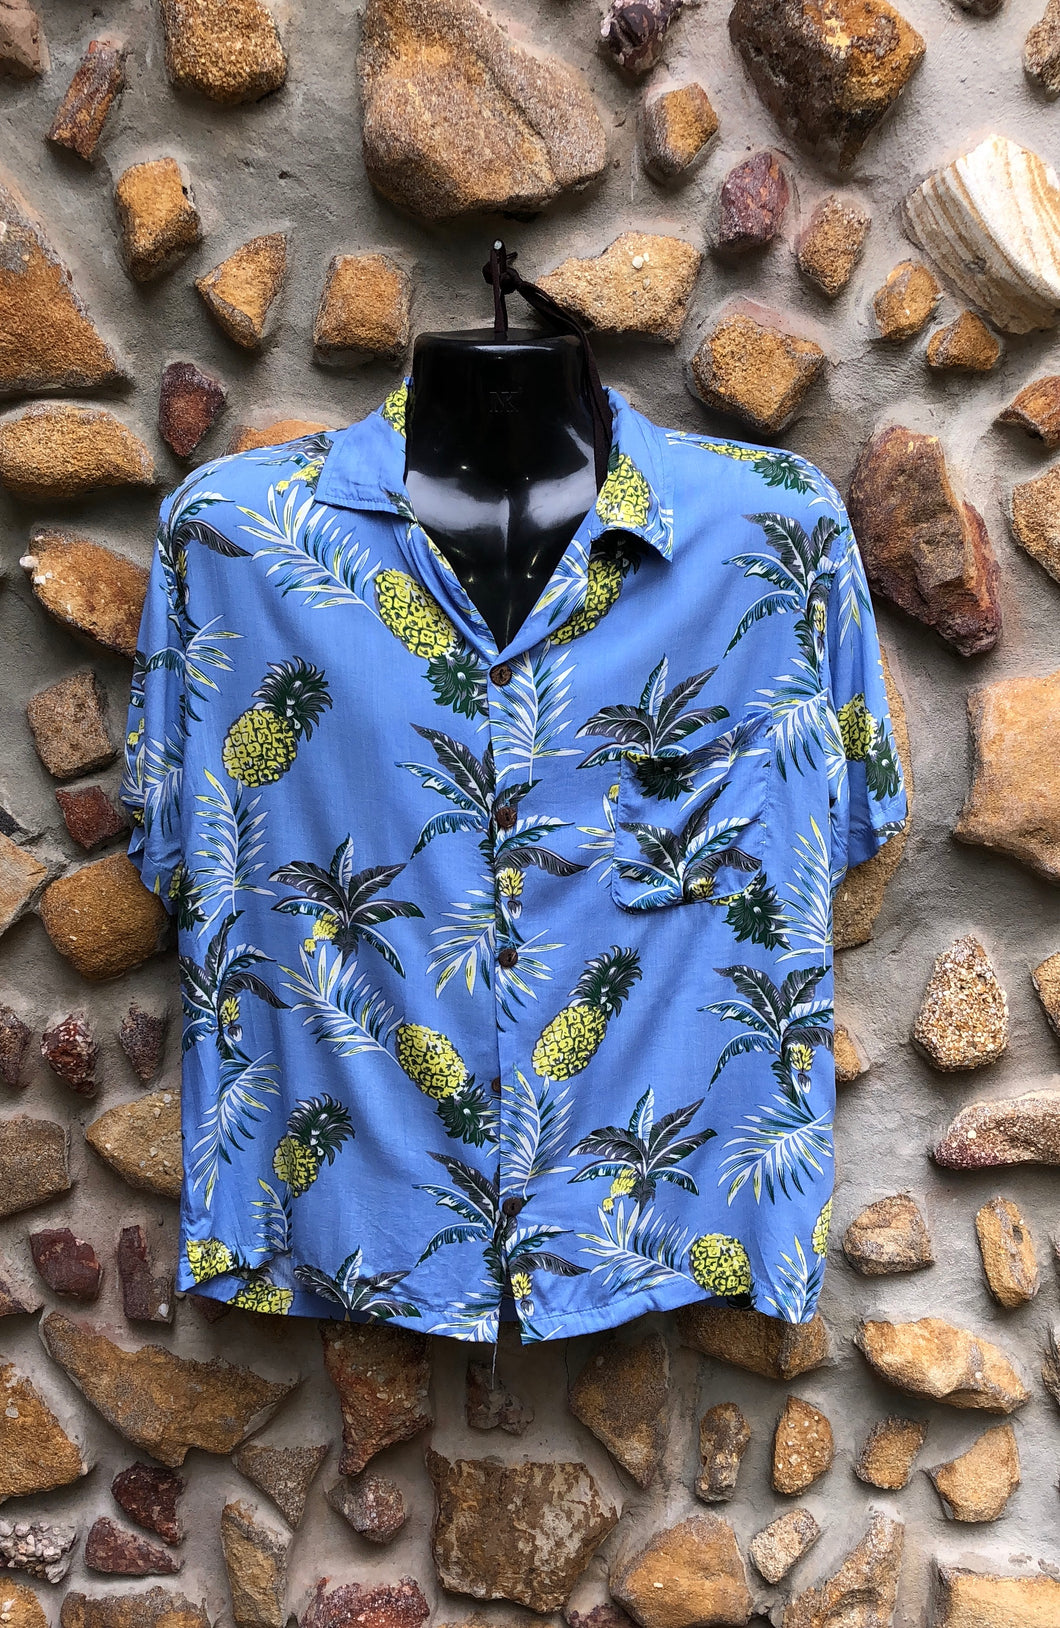 Medium Love Shirt - Pineapples on Blue